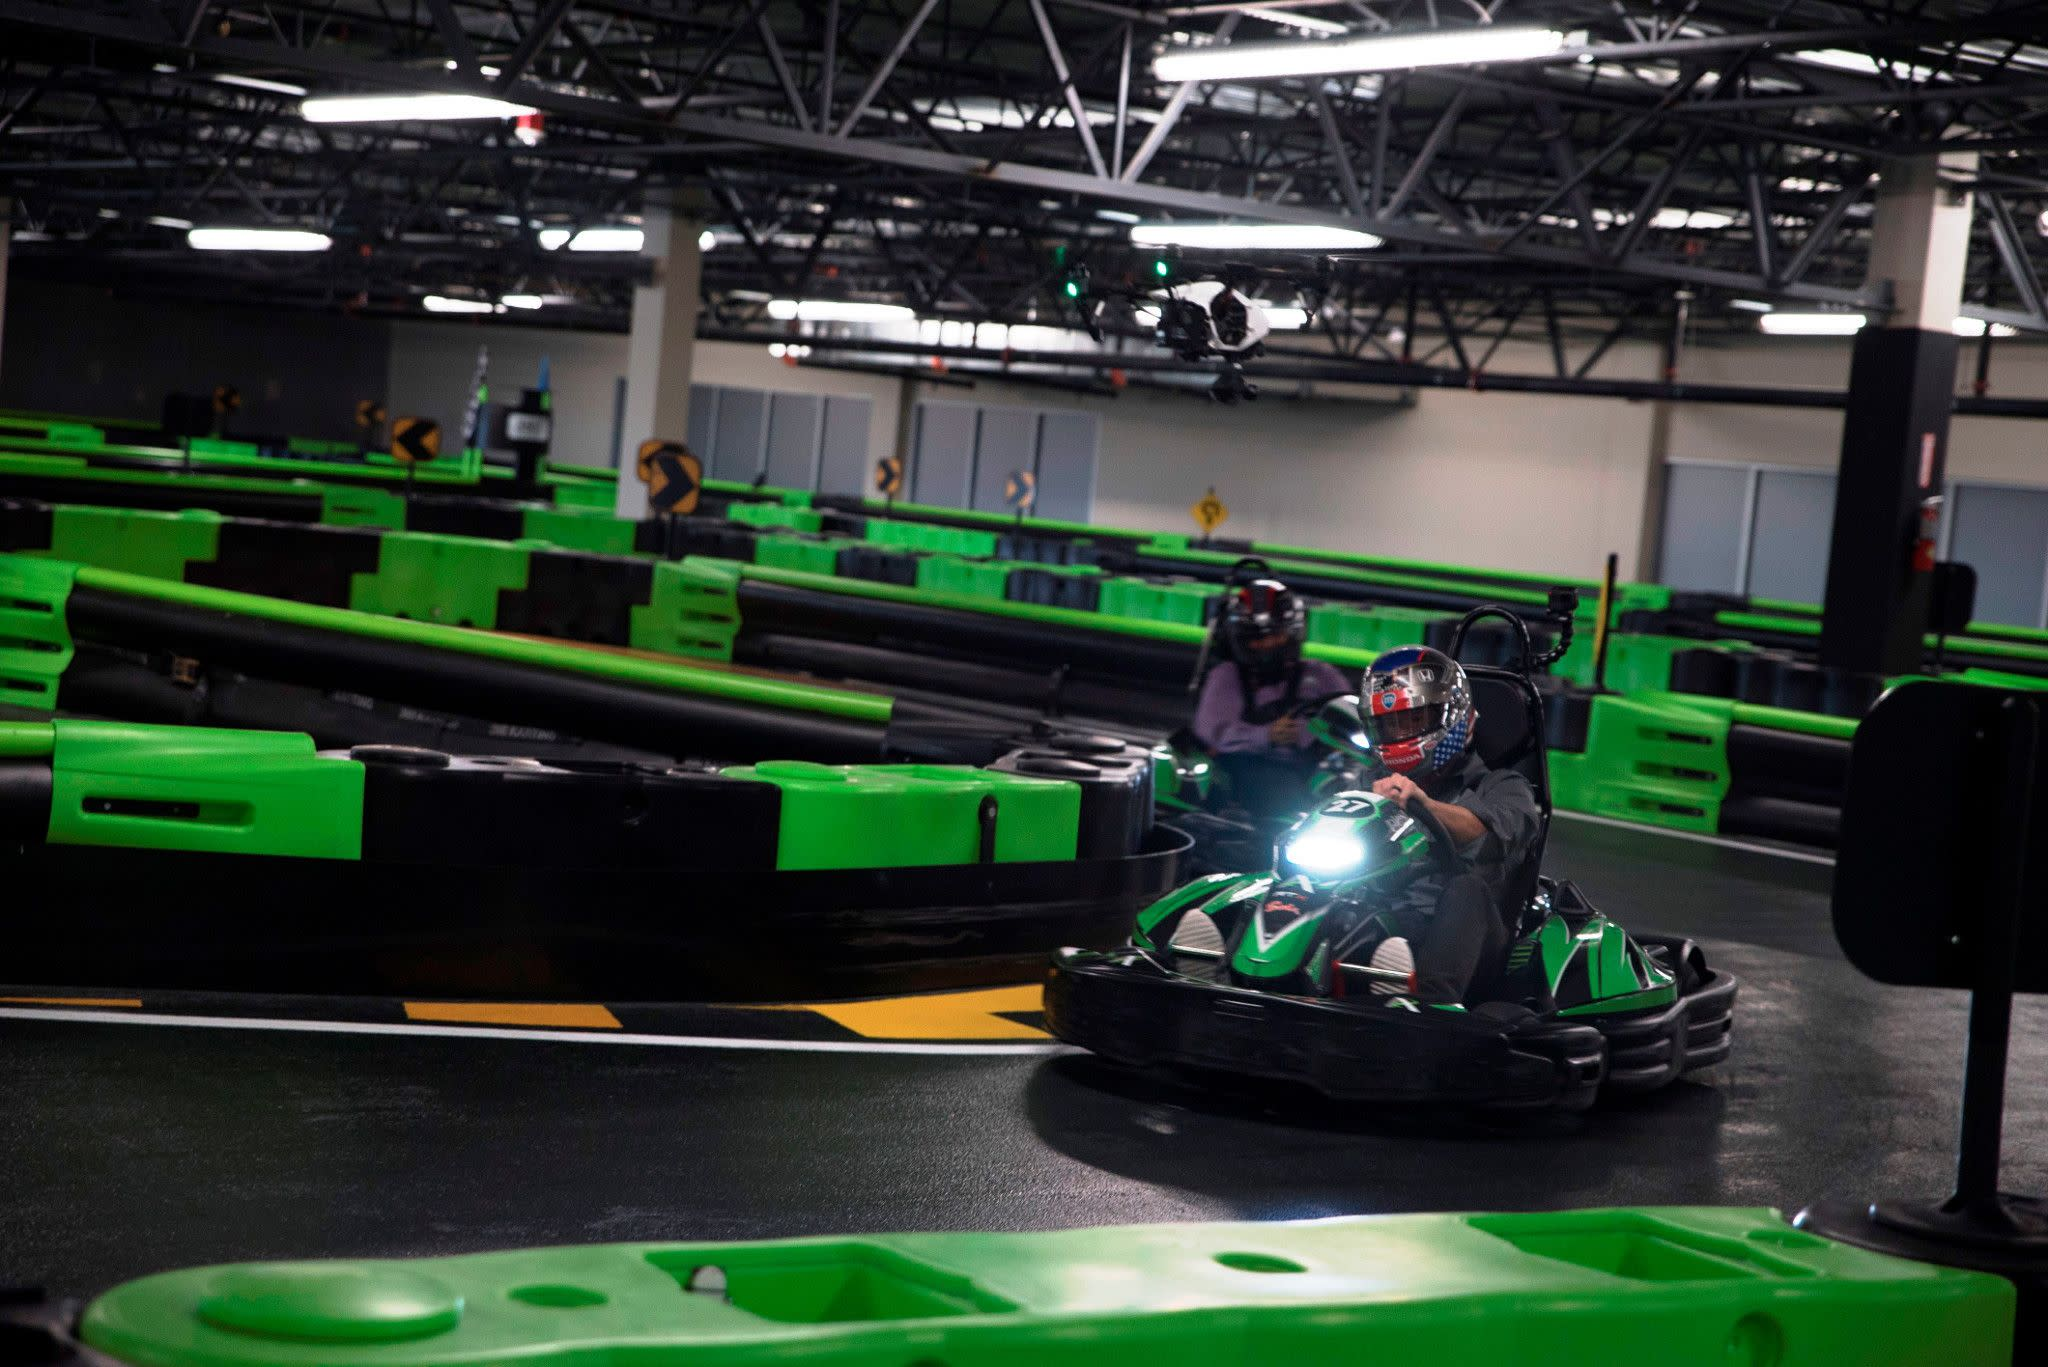 Andretti Indoor Karting & Games in Orlando